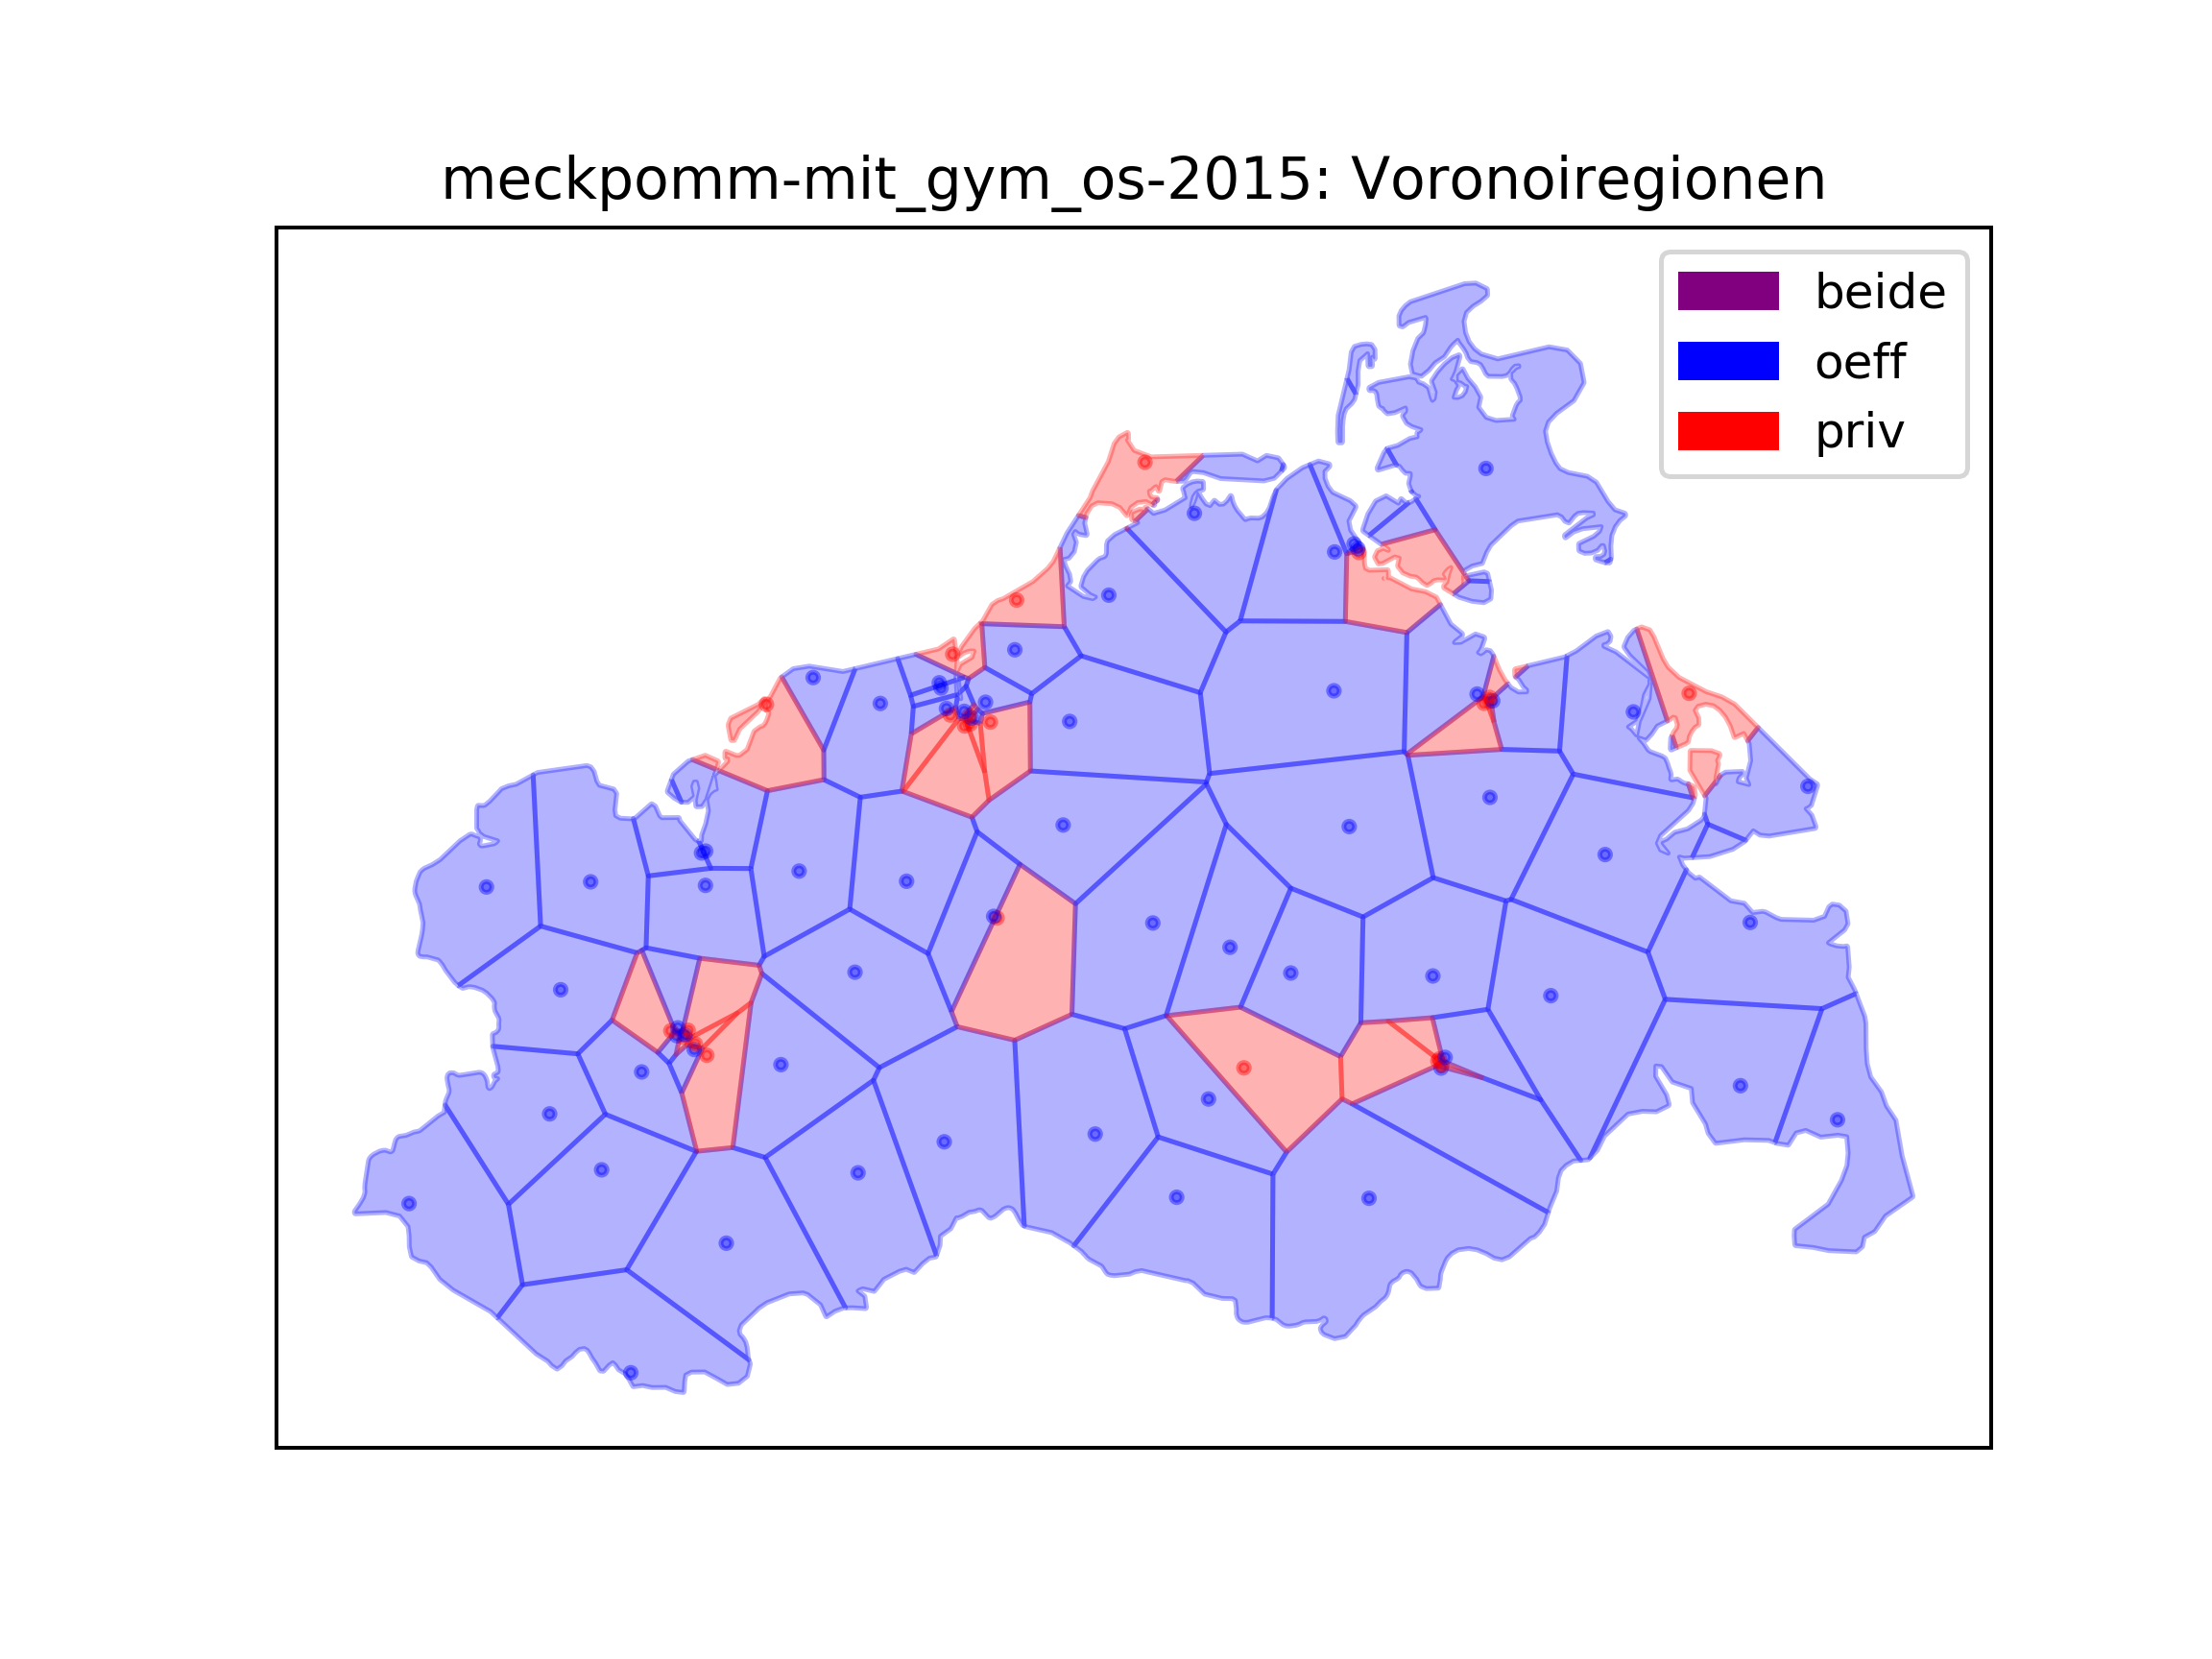 Lab report: Development of school sites in eastern Germany